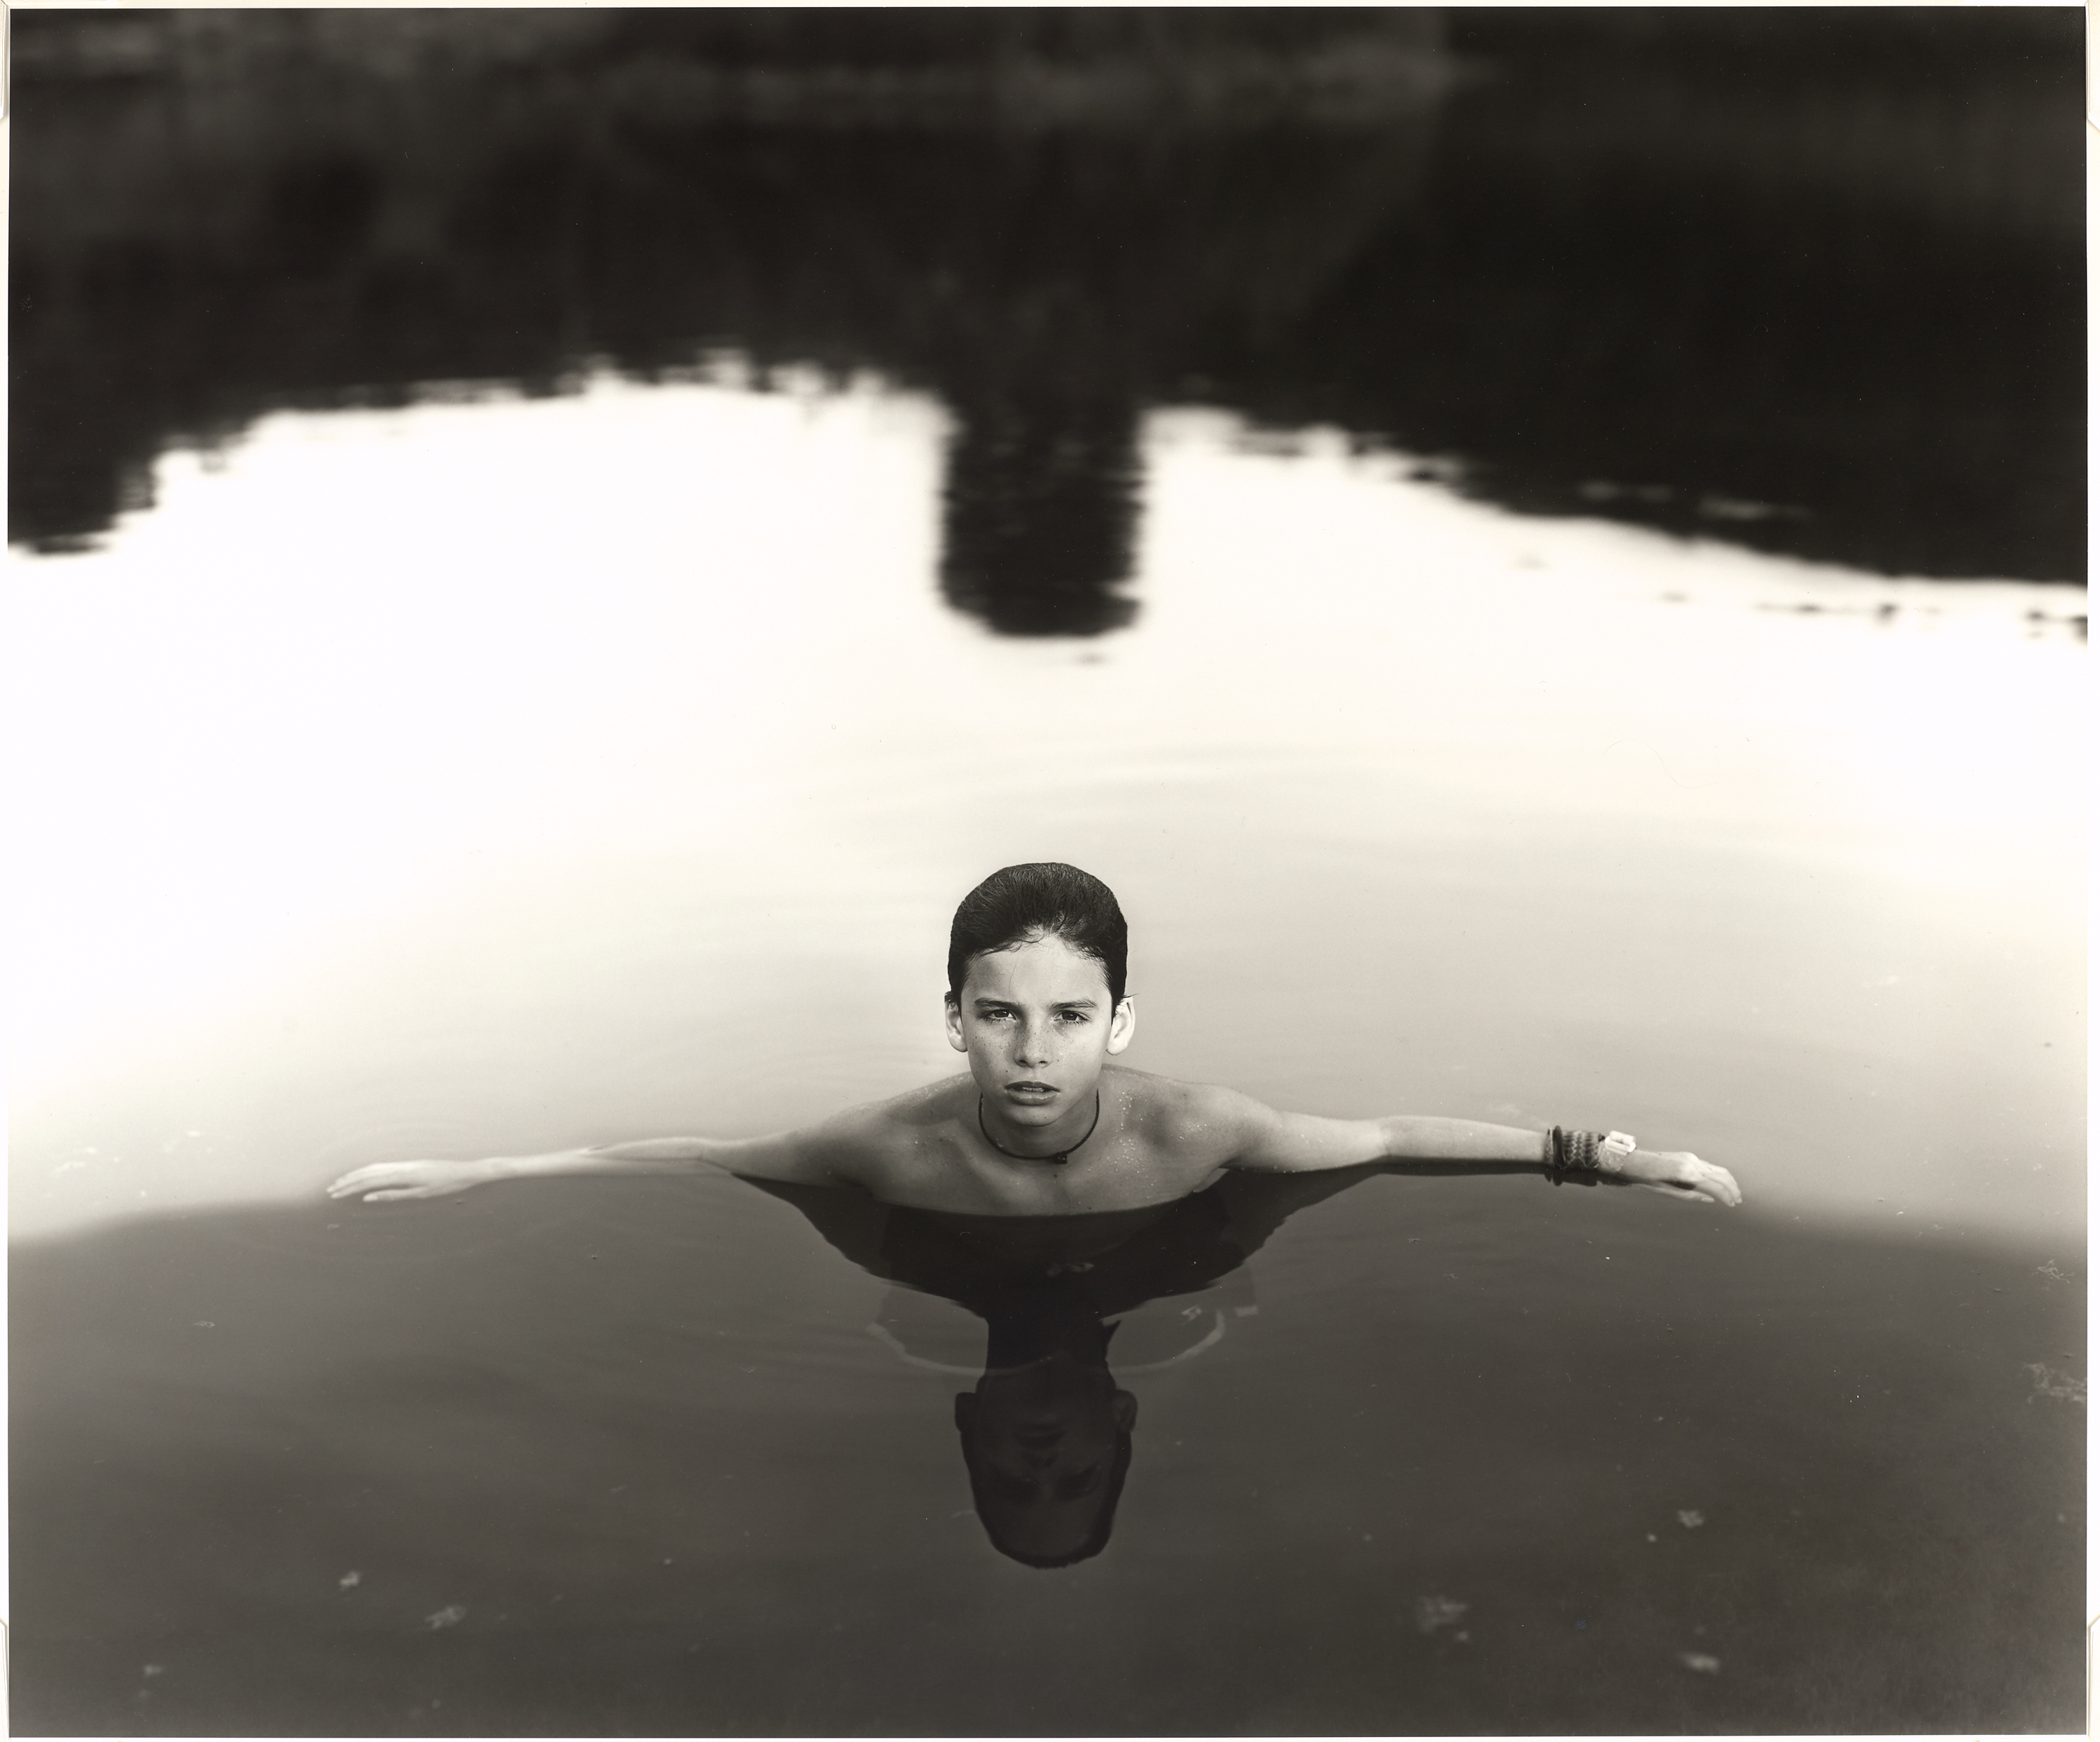 Sally Mann, American, born 1951. Under Blueberry Hill, 1991. Gelatin silver print, image: 48.3 × 58.4 cm. Museum purchase, Philip F. Maritz, Class of 1983, Photography Acquisitions Fund (2016-46) © Sally Mann, Courtesy of Gagosian Gallery